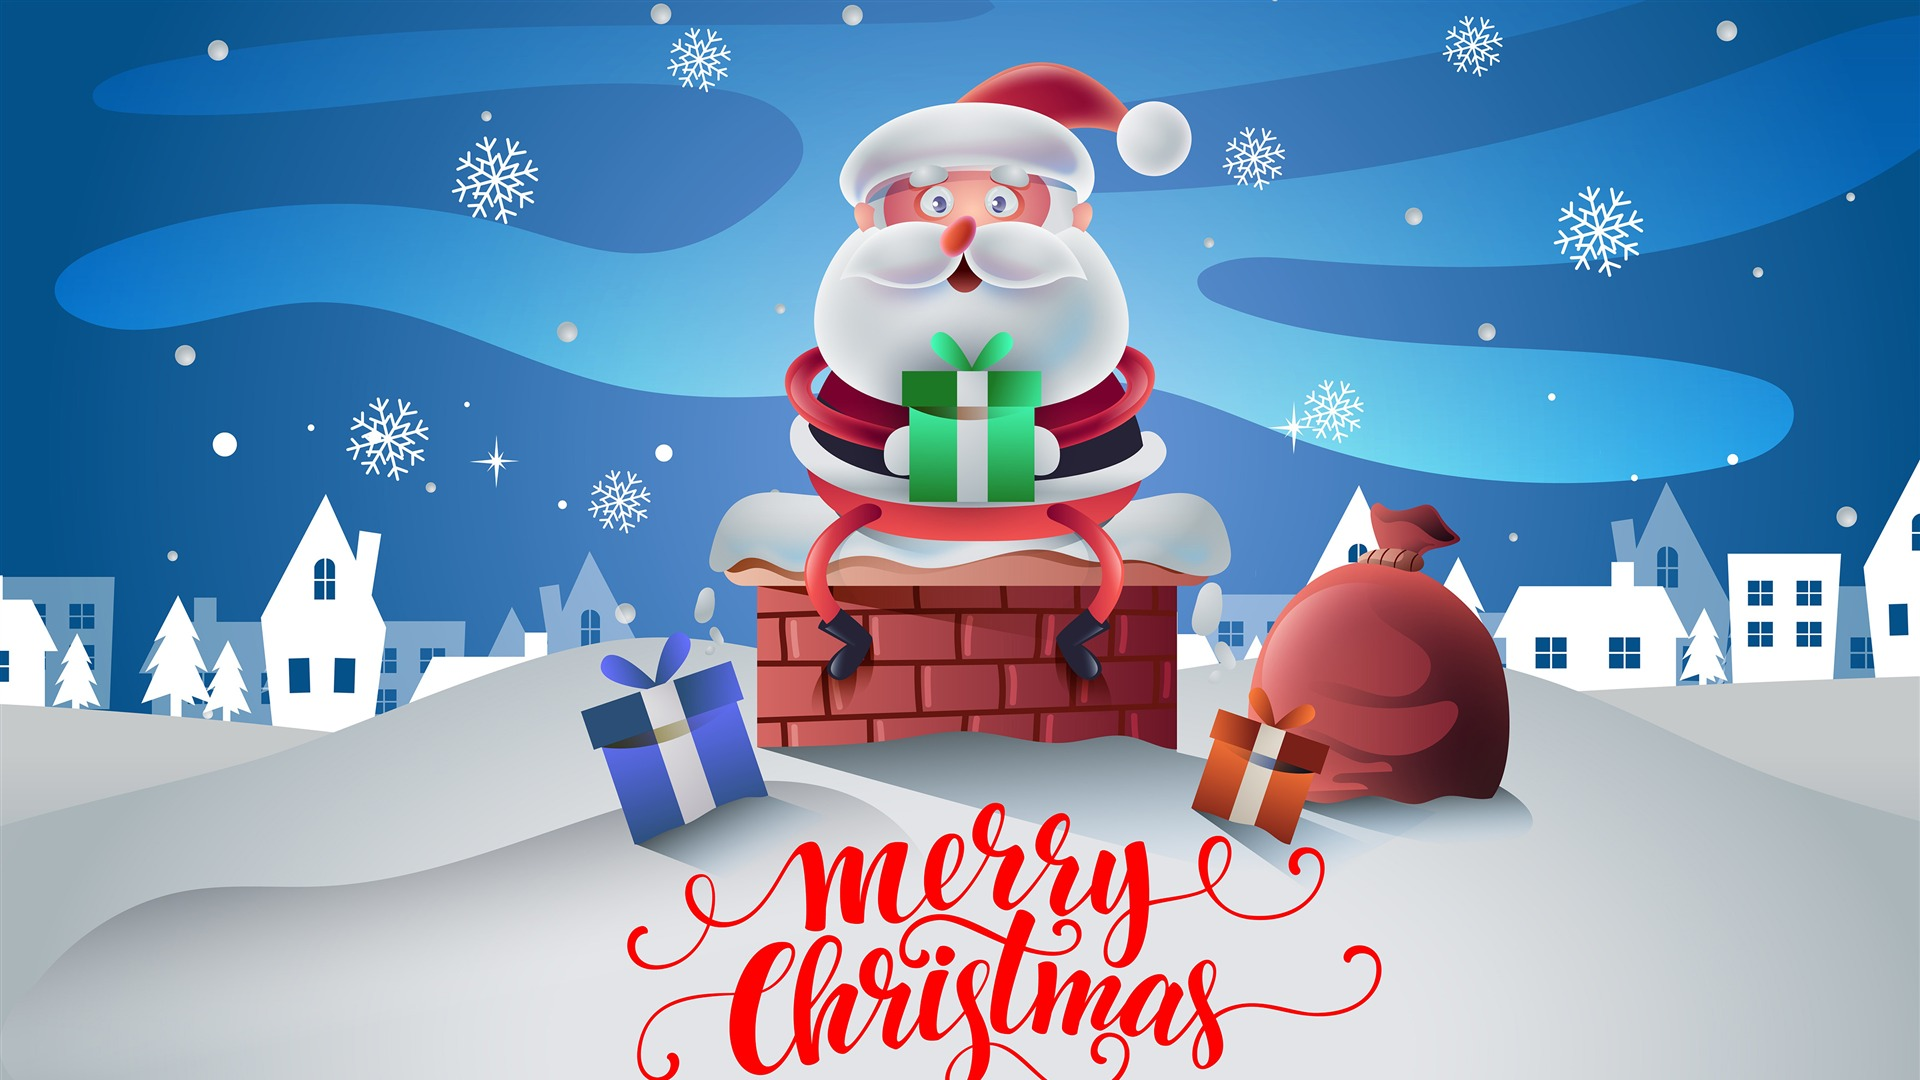 Christmas Cartoon Design Wallpaper 1920x1080